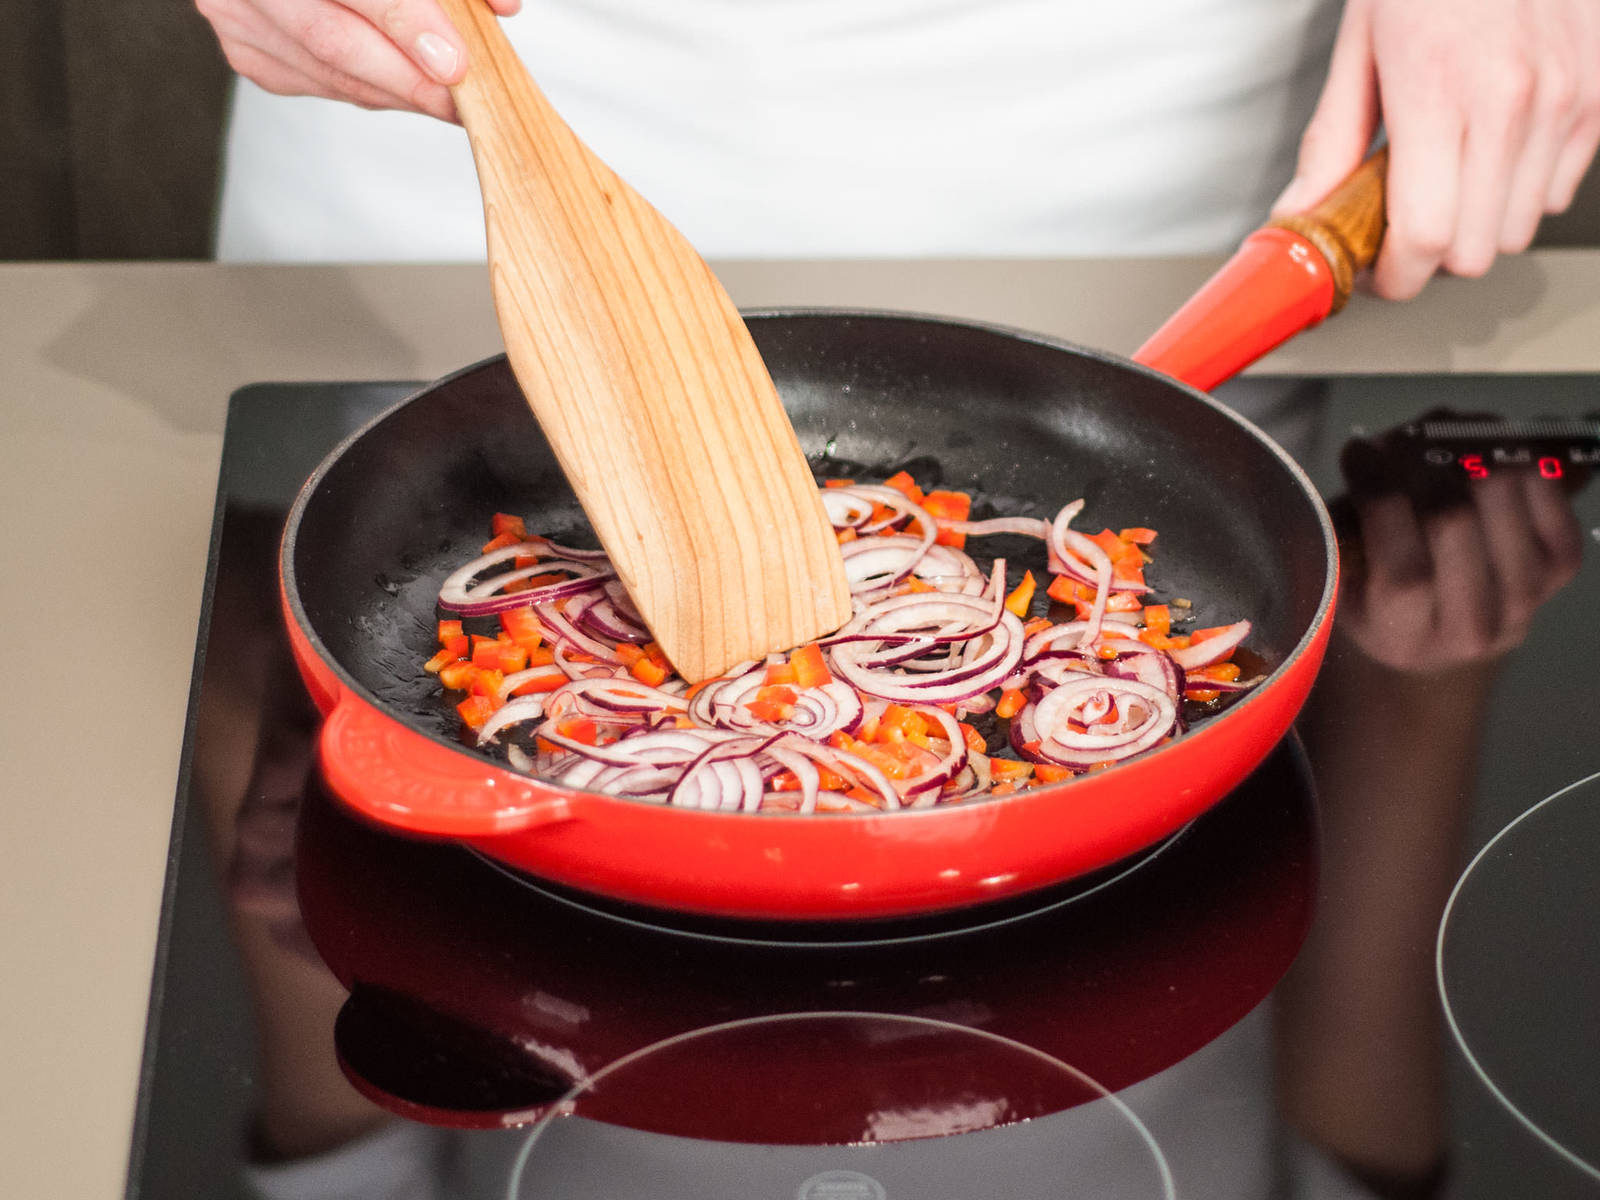 Heat up butter in a frying pan and sauté onions over medium heat for approx. 1 – 2 minutes. Then, add the bell pepper and continue to sauté for an additional 2 – 3 min.